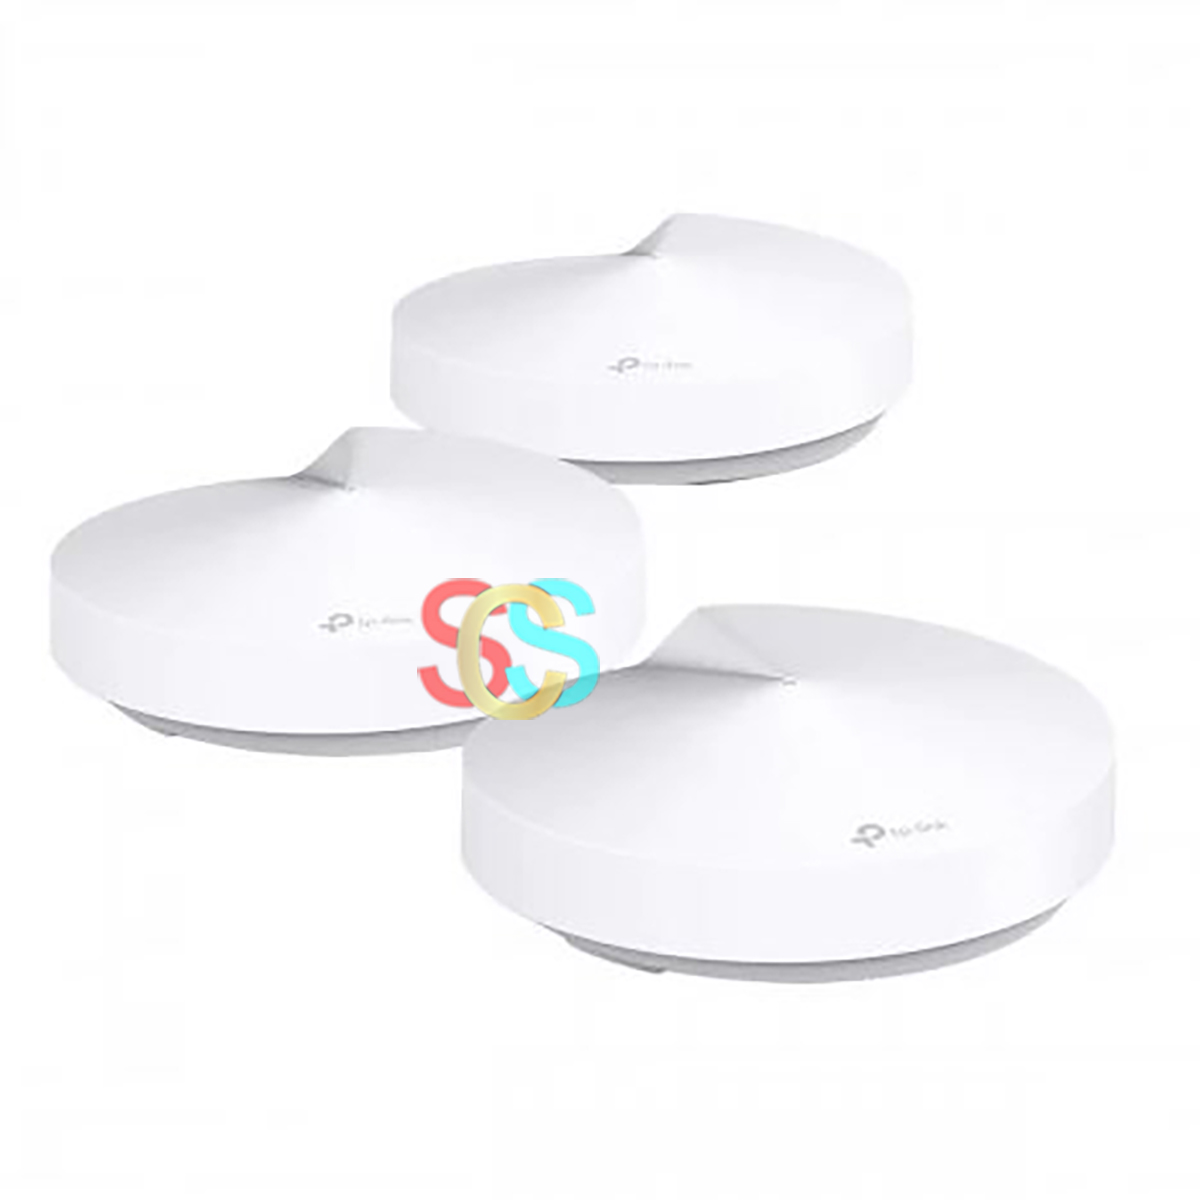 TP-Link Deco M5 AC1300 Mbps Gigabit Dual-Band Wi-Fi System (3-Pack)